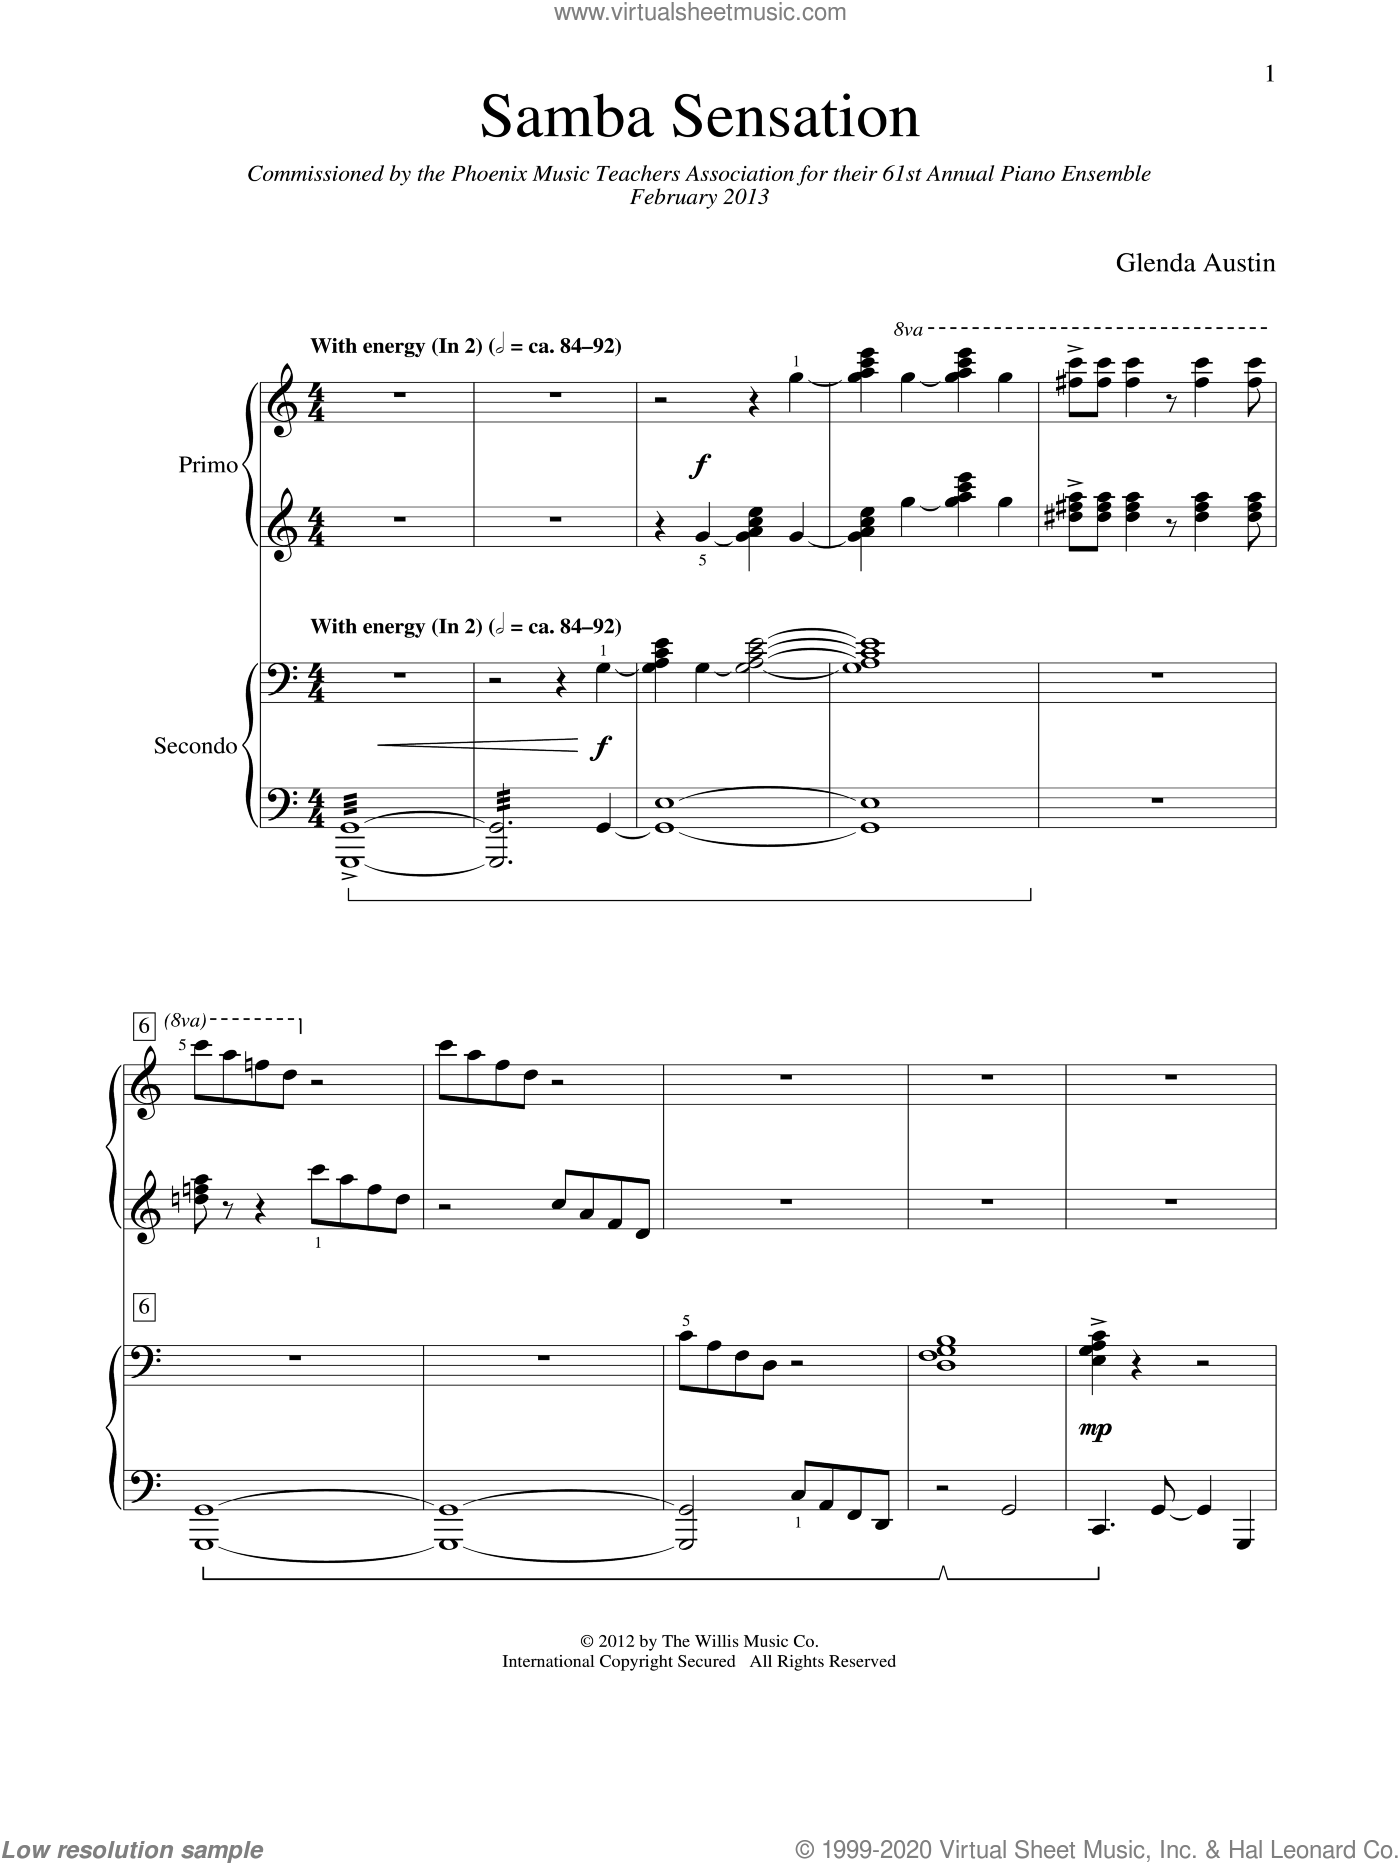 Samba Sensation sheet music for piano four hands (duets) by Glenda Austin